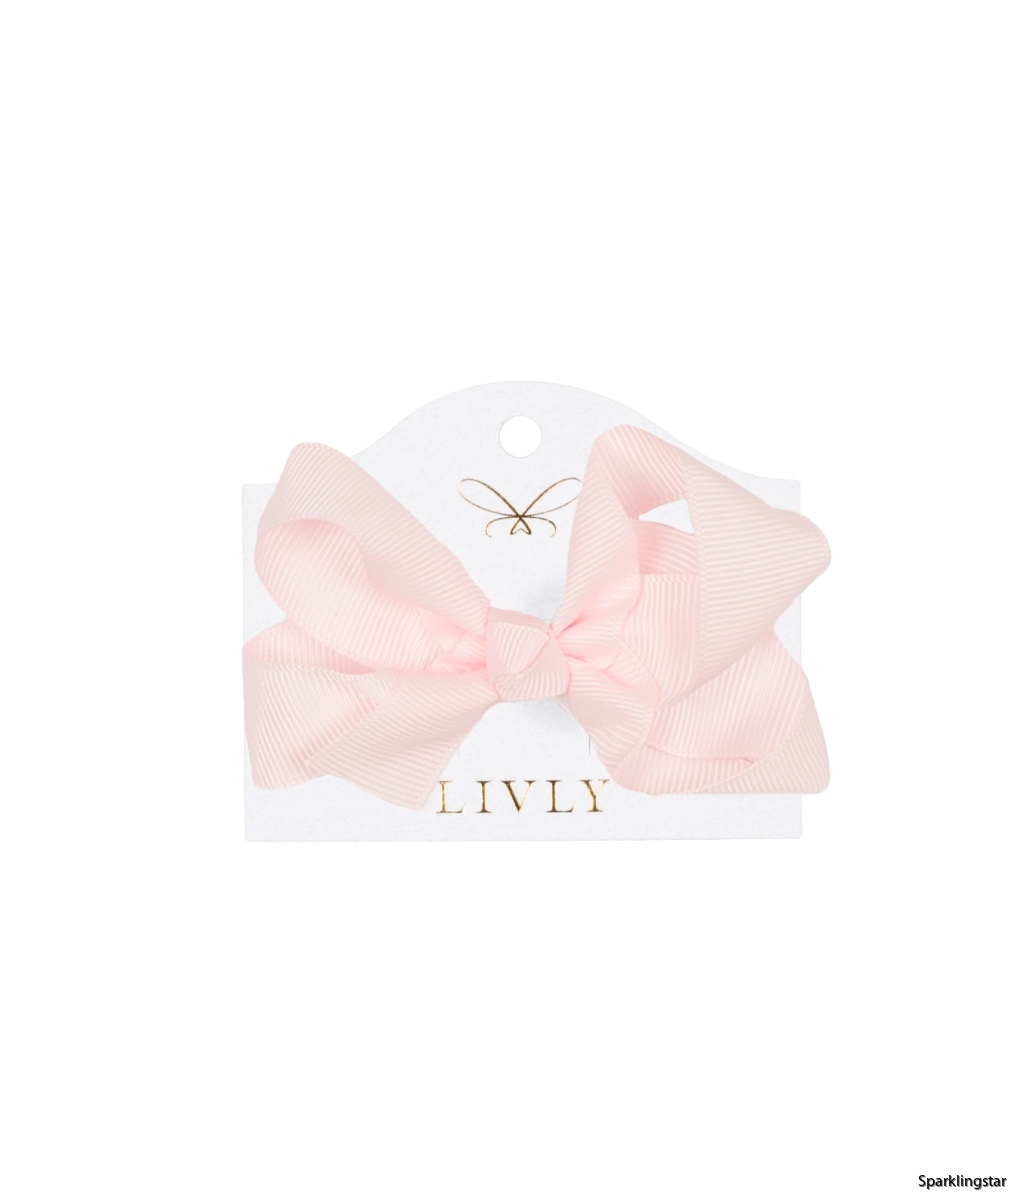 Livly Large Bow Cotton Candy